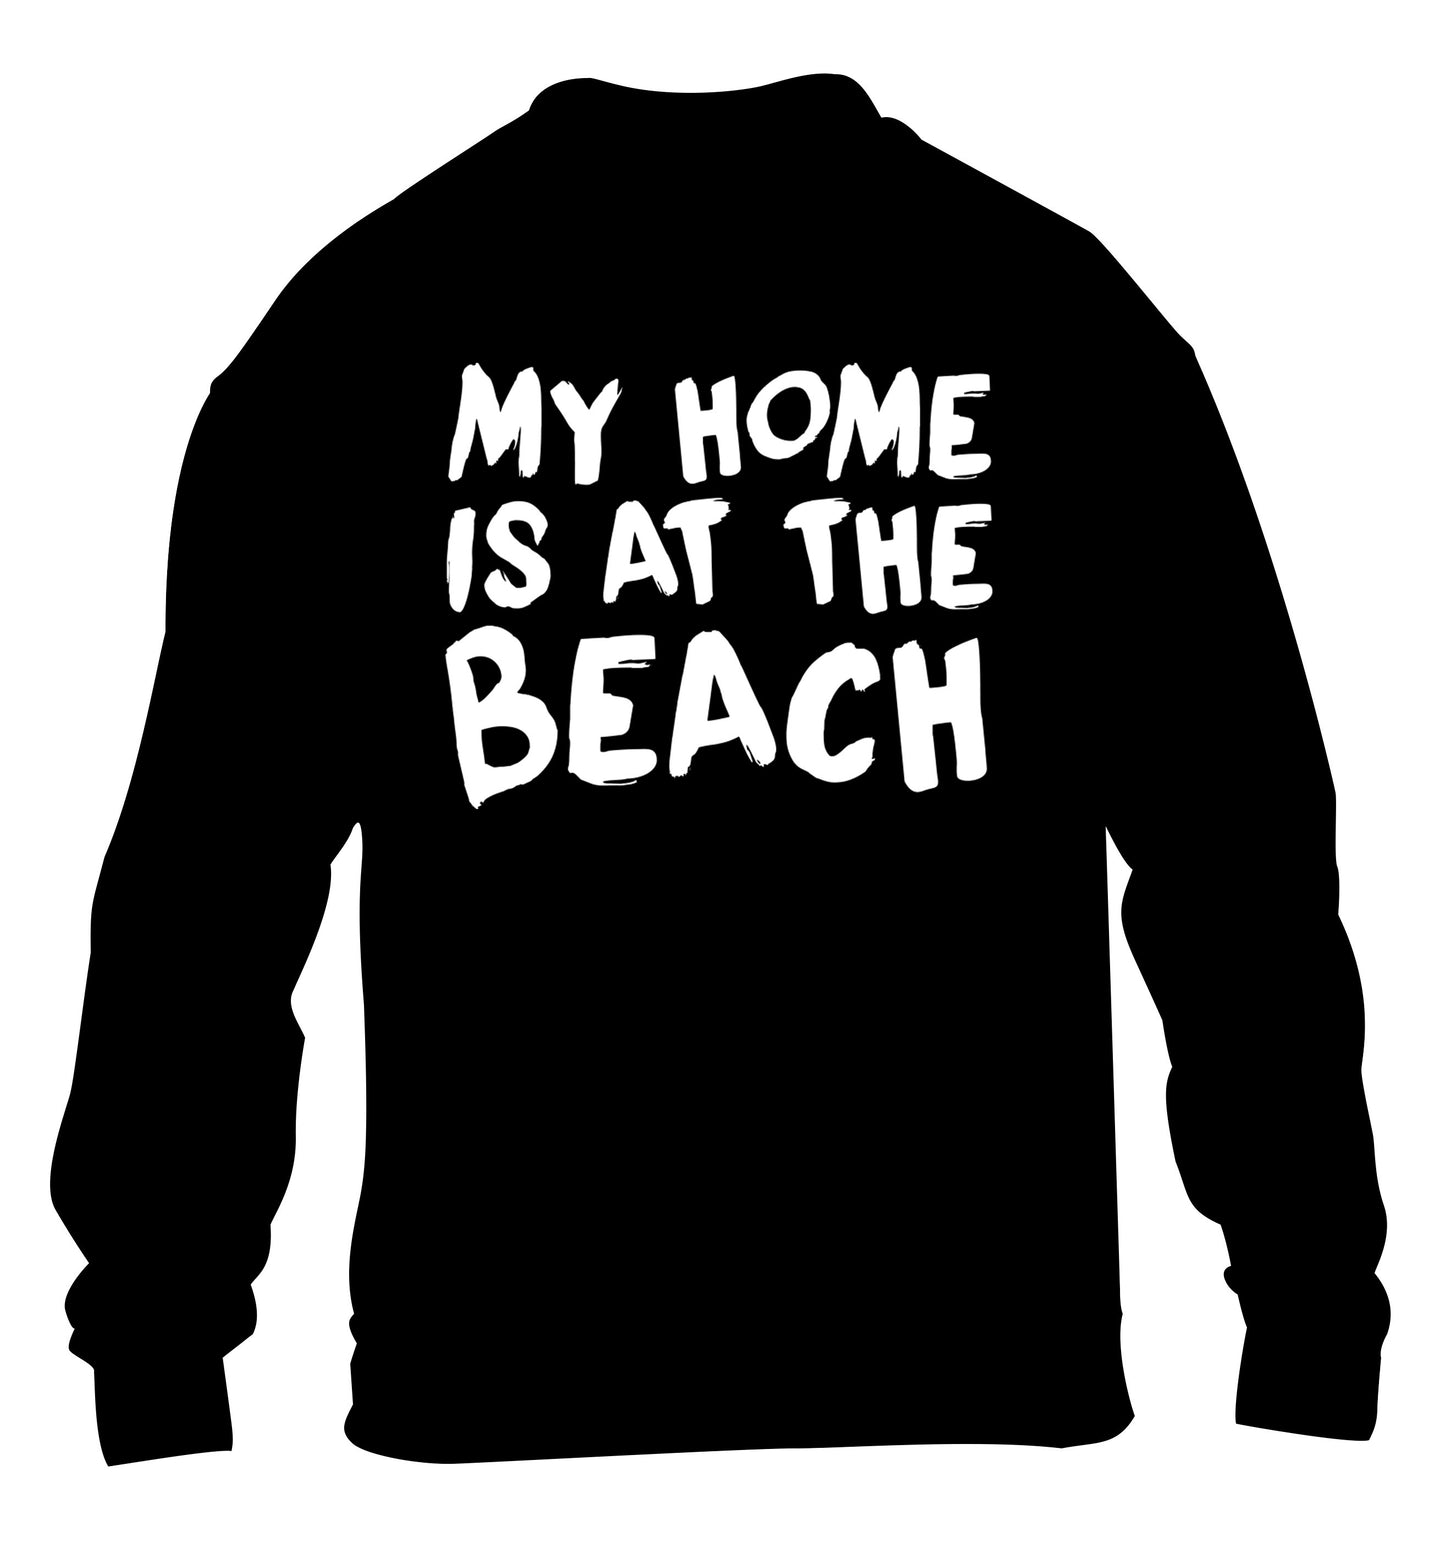 My home is at the beach children's black sweater 12-14 Years